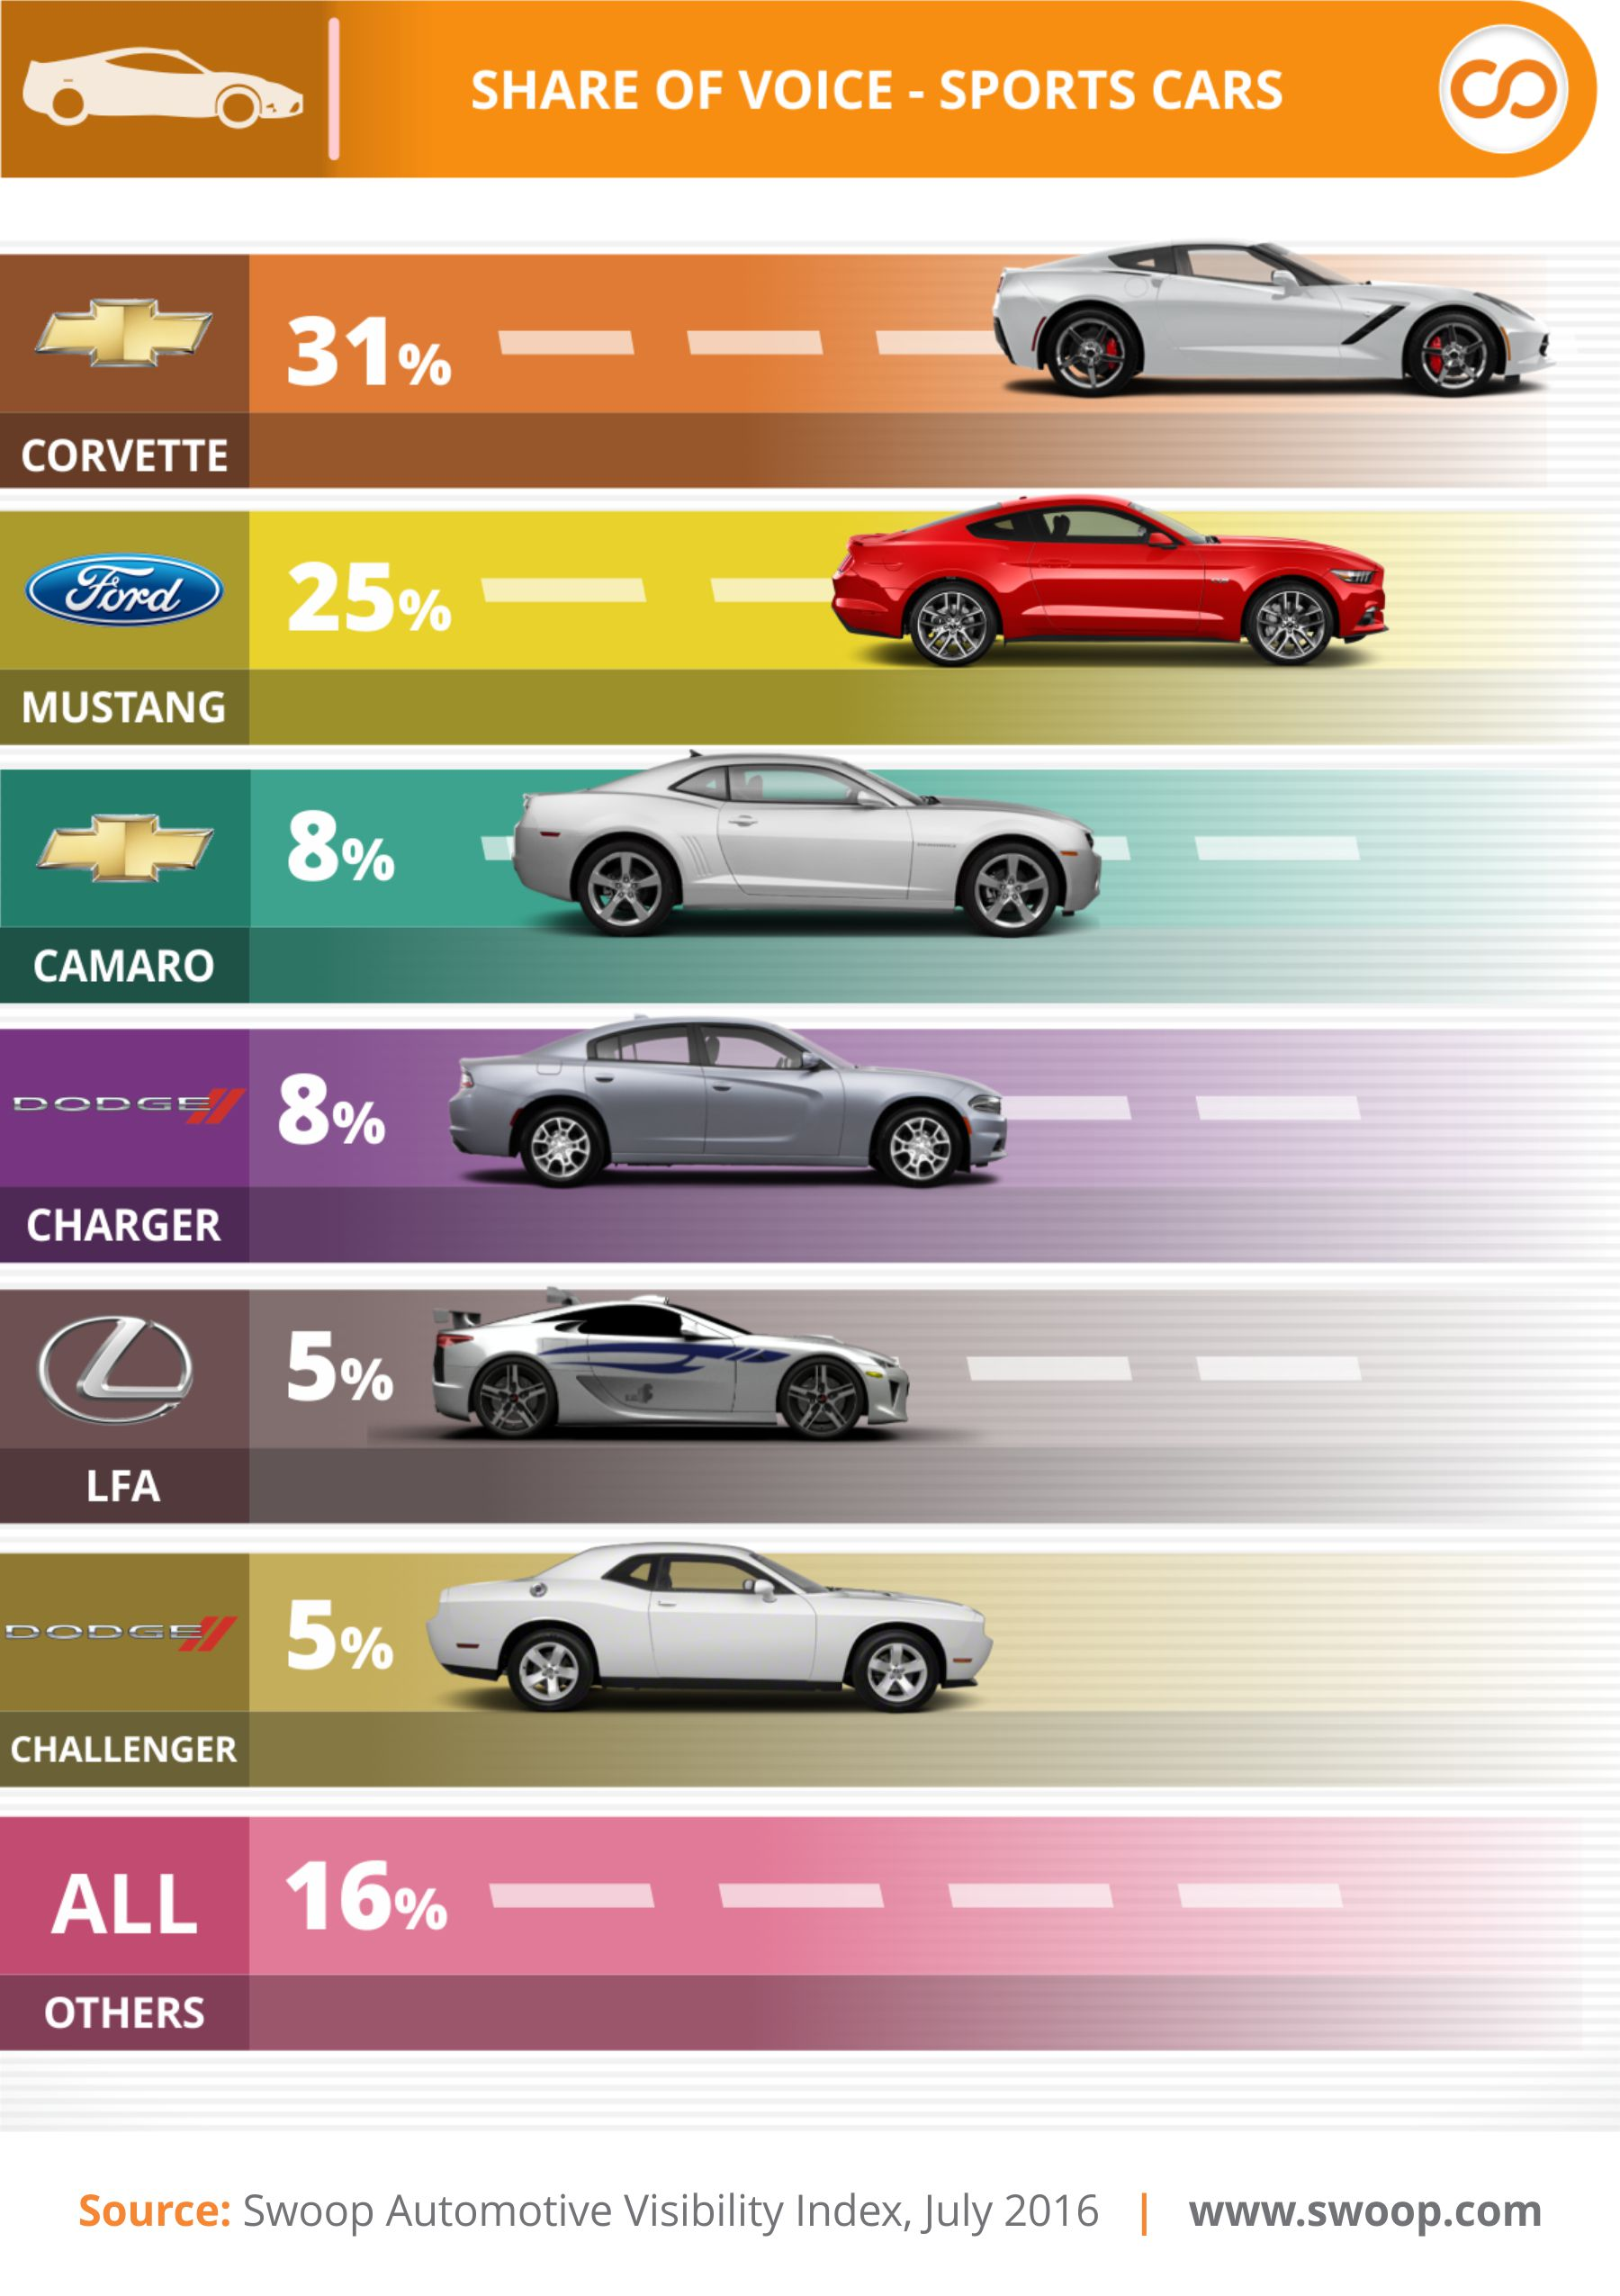 Swoop Most Visible Sports Cars Q2 2016